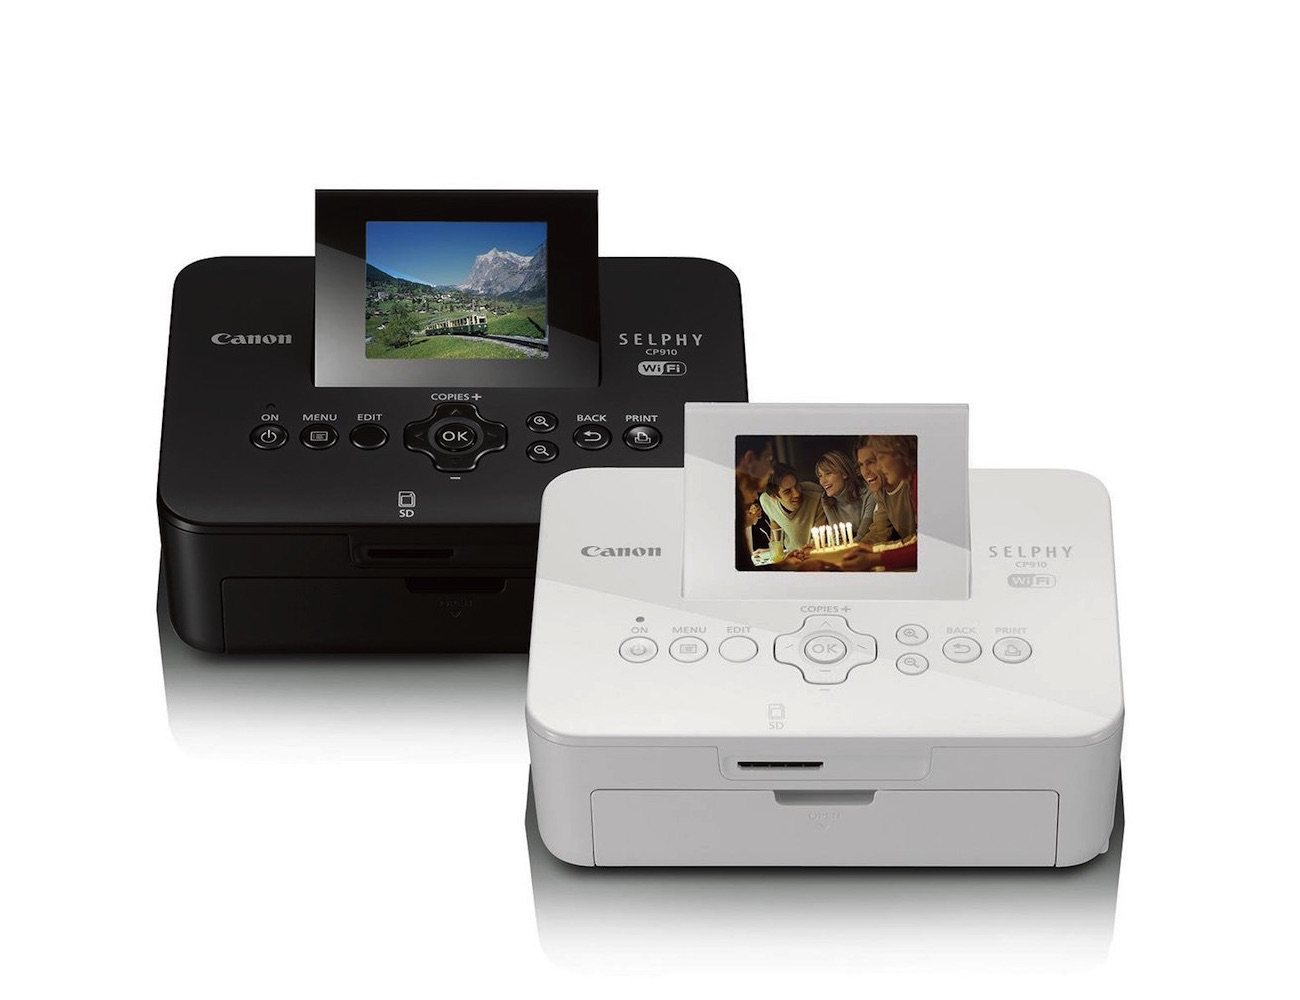 SELPHY CP910 Portable Wireless Photo Printer by Canon